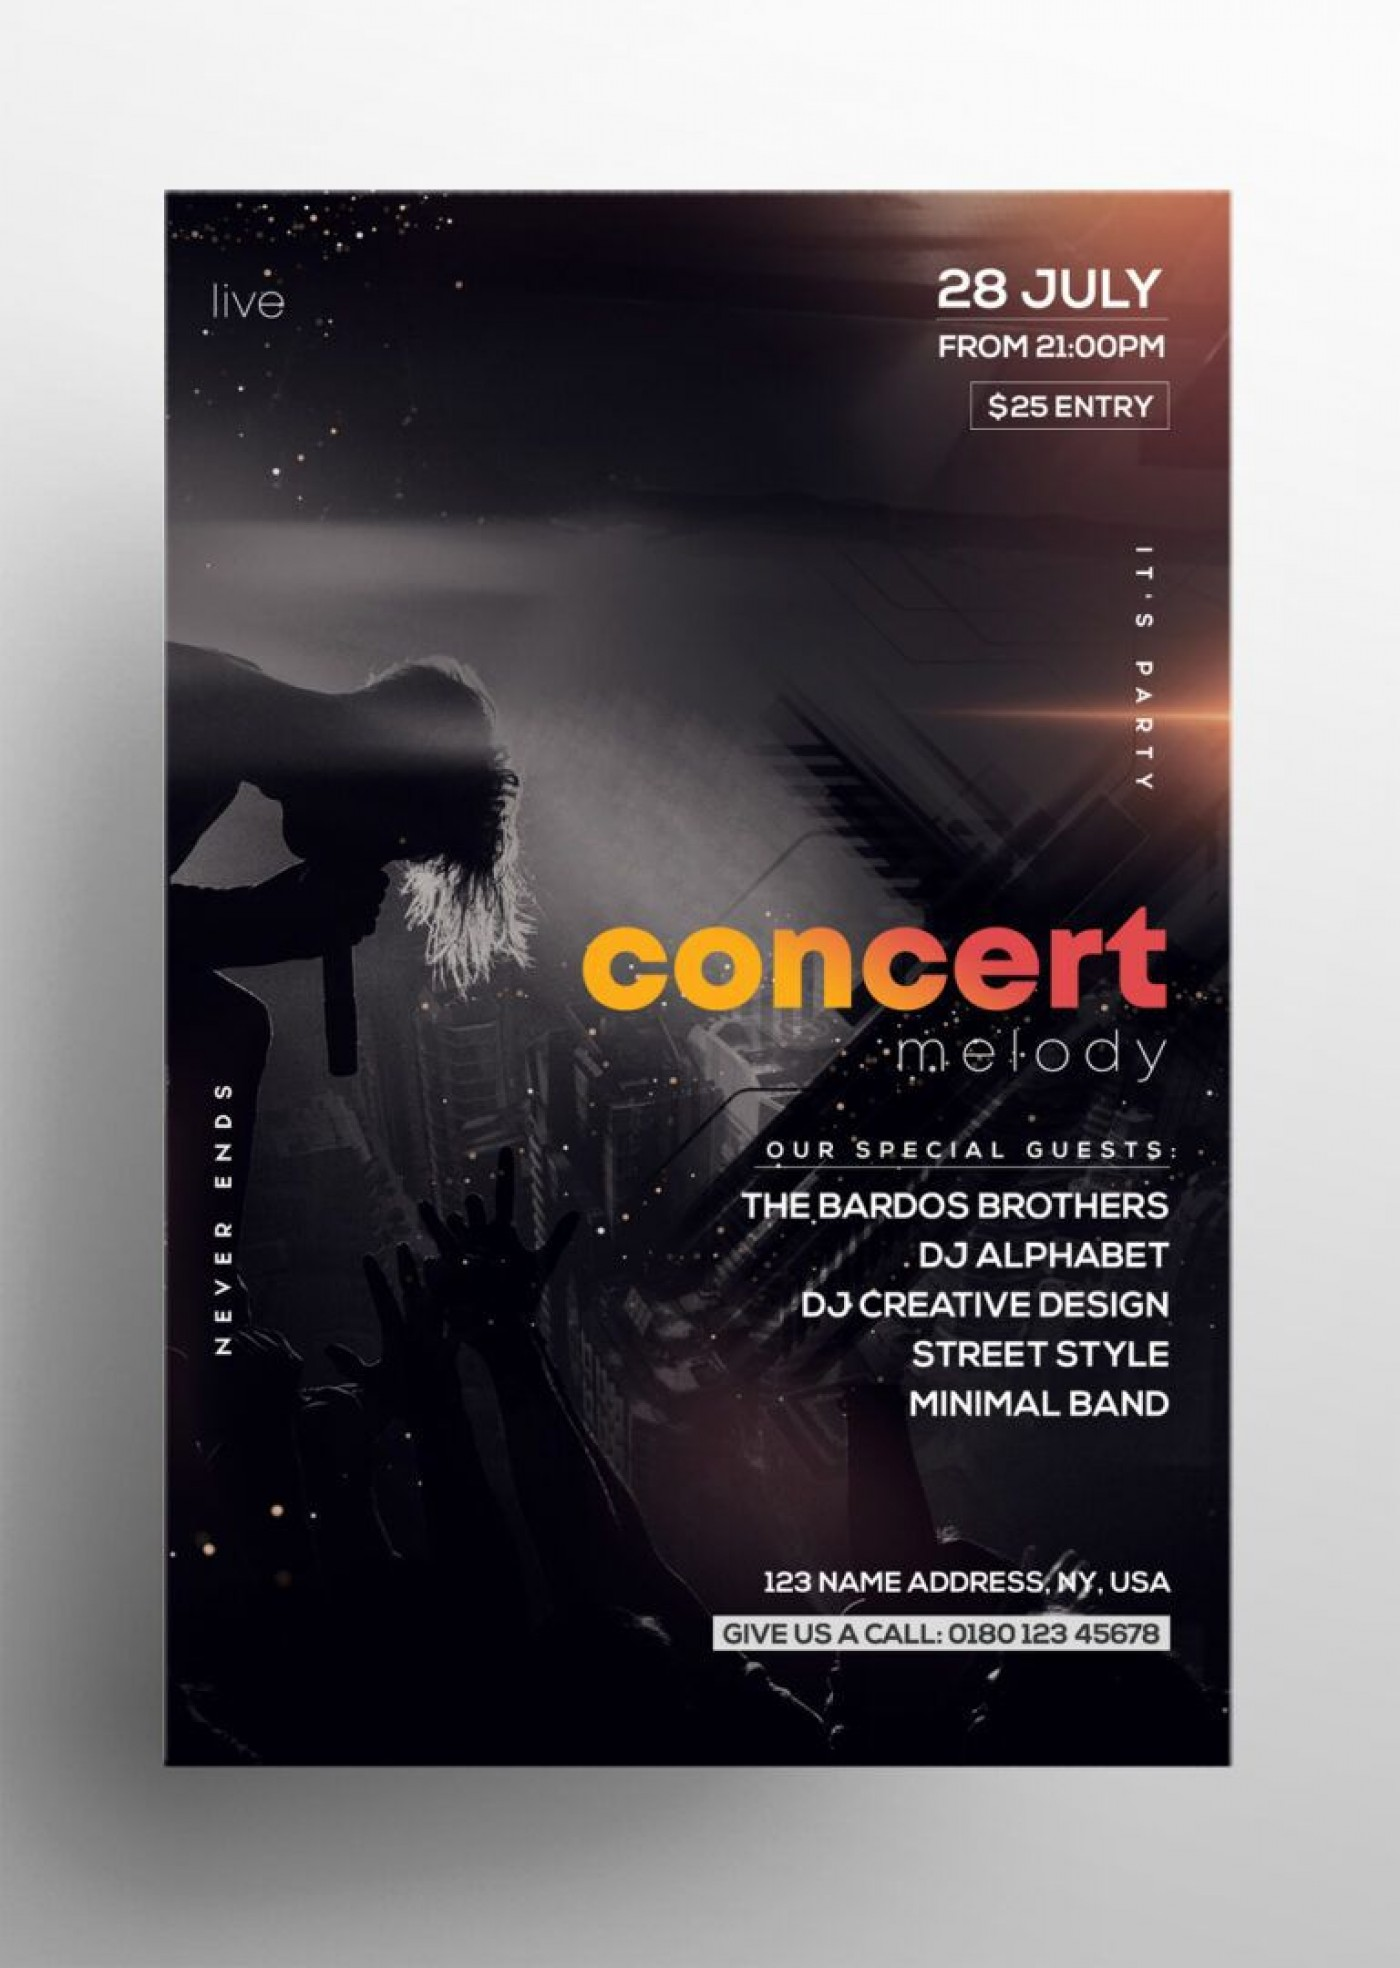 000 Unforgettable Free Concert Poster Template Highest Clarity  Rock Psd Christma Photoshop1400